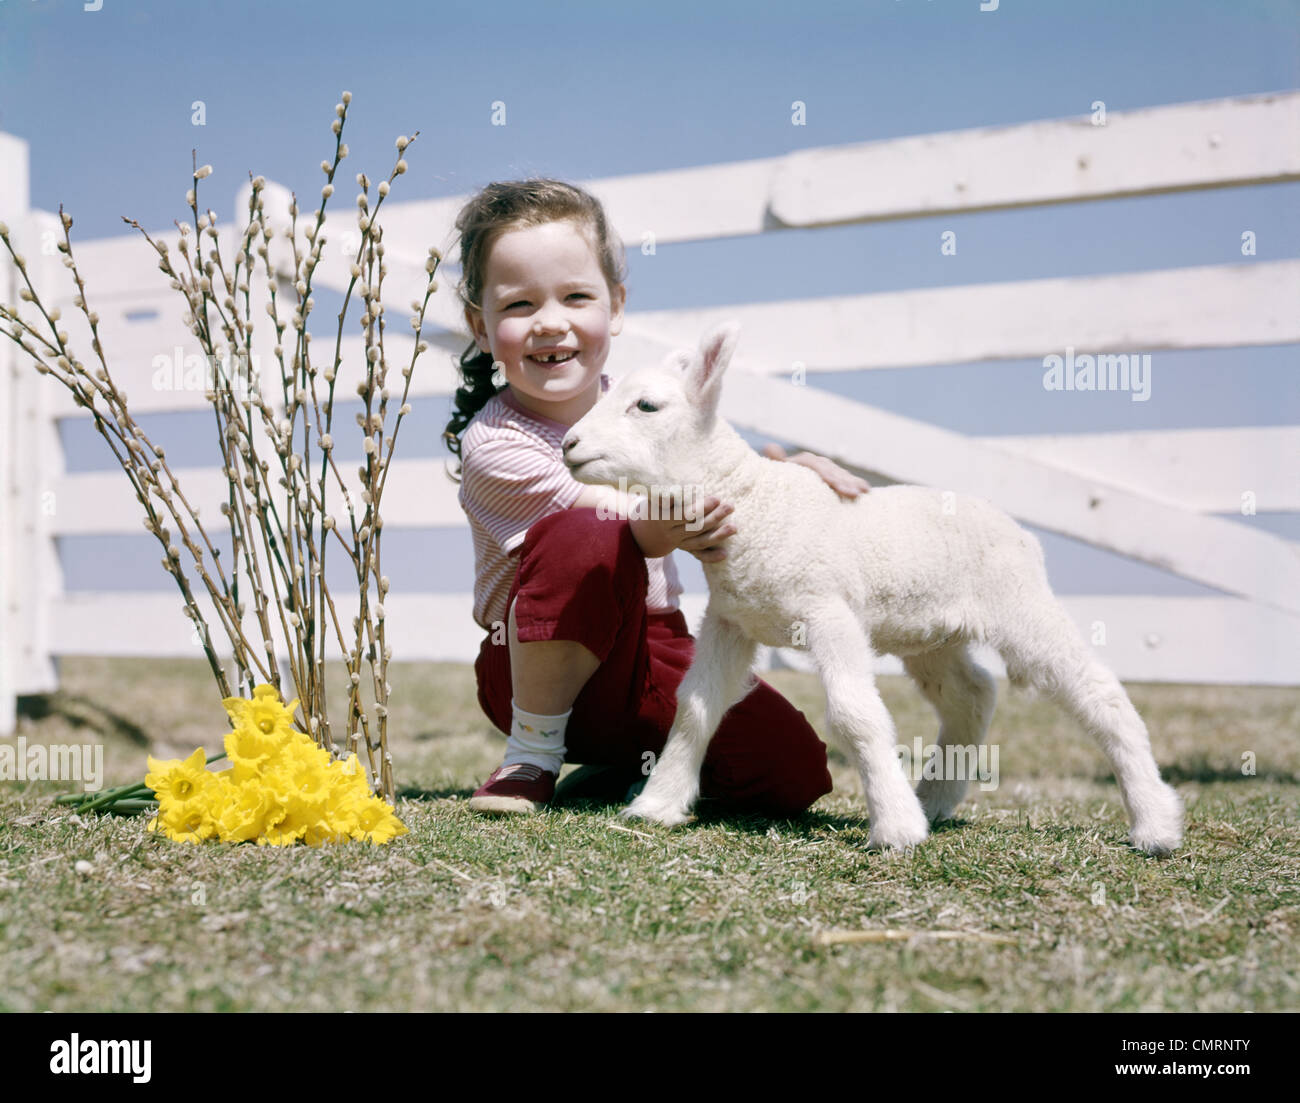 Retro daughter pussy 1950s 1960s SMILING GIRL HOLDING SPRING LAMB FENCE DAFFODILS PUSSY WILLOW  RETRO